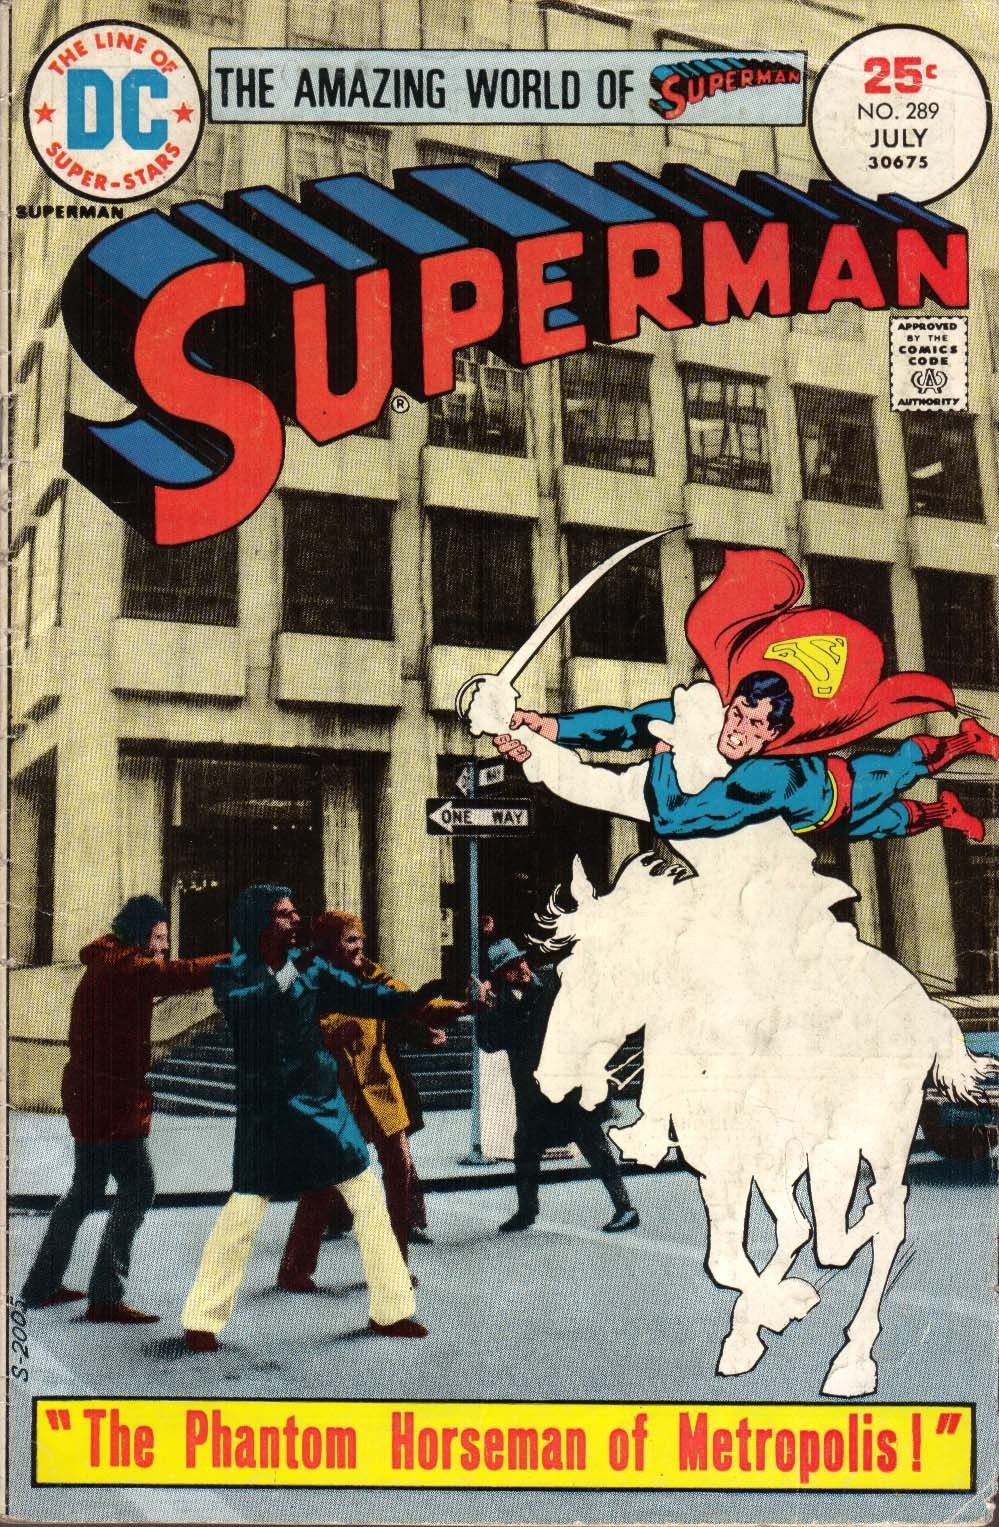 comicbookcovers:  Superman #289, July 1975